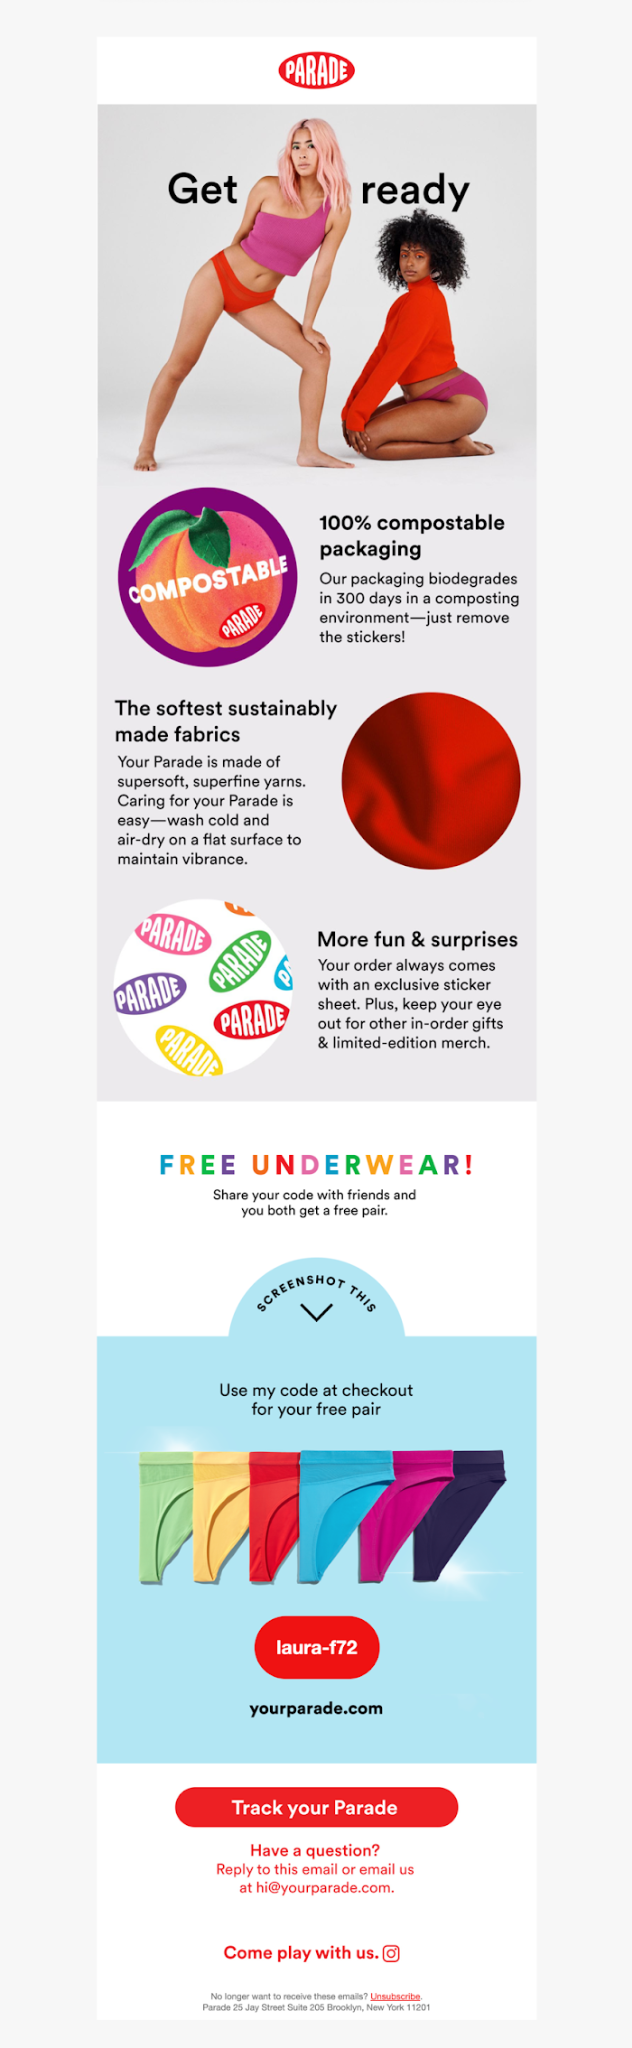 drip email campaign by Parade